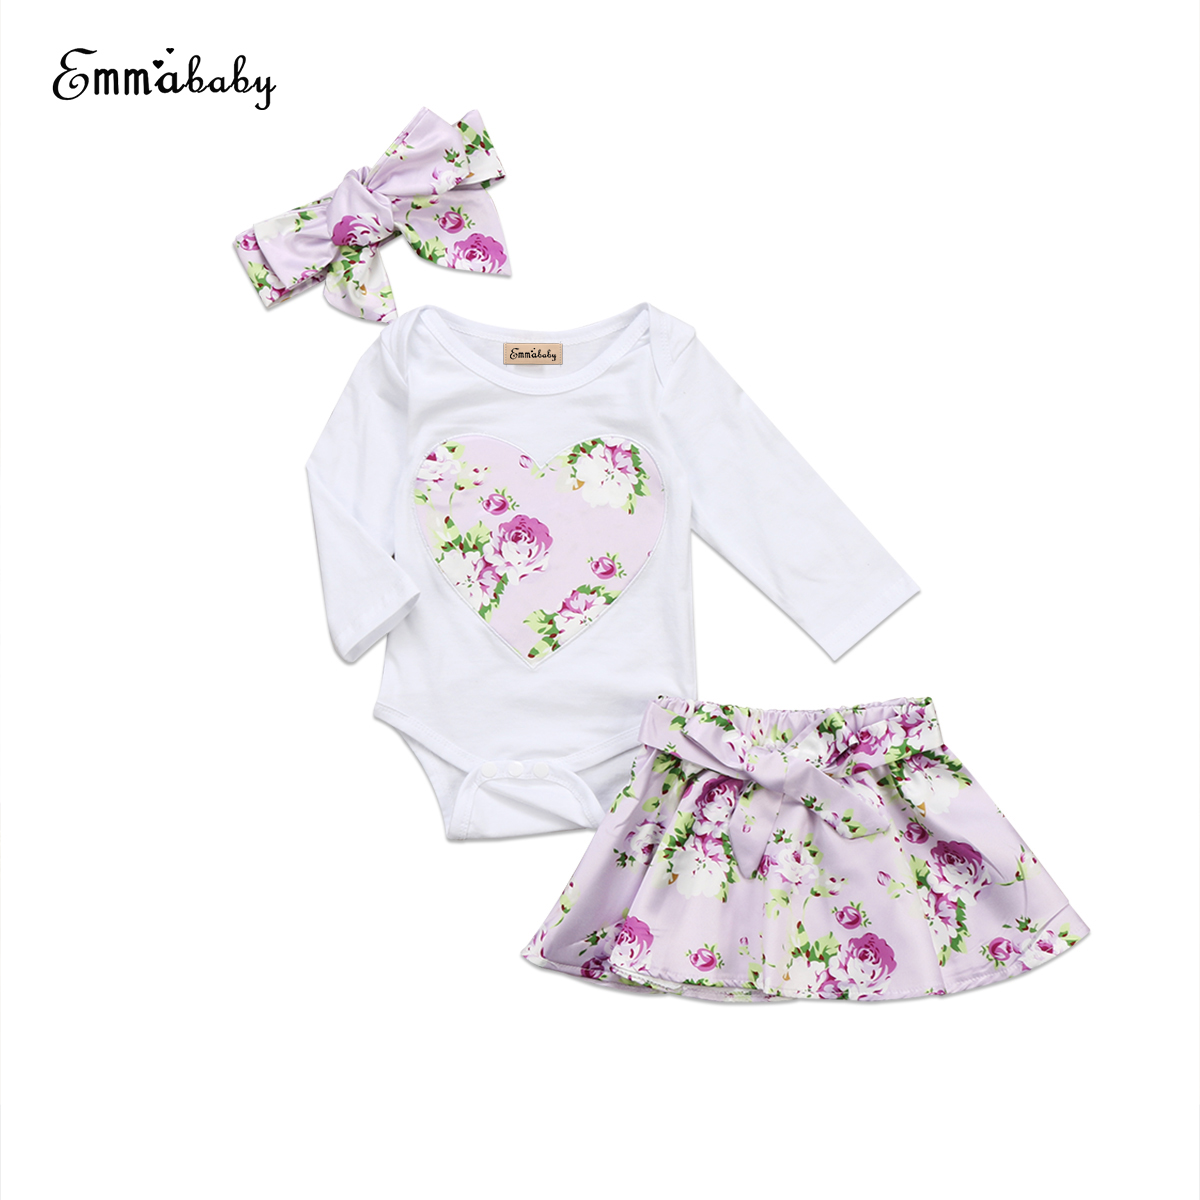 New lovely Newborn Infant Baby Girl Clothes long sleeve bodysuit Jumpsuit Bodysuits Floral printed Skirt 3pcs cute Outfits set